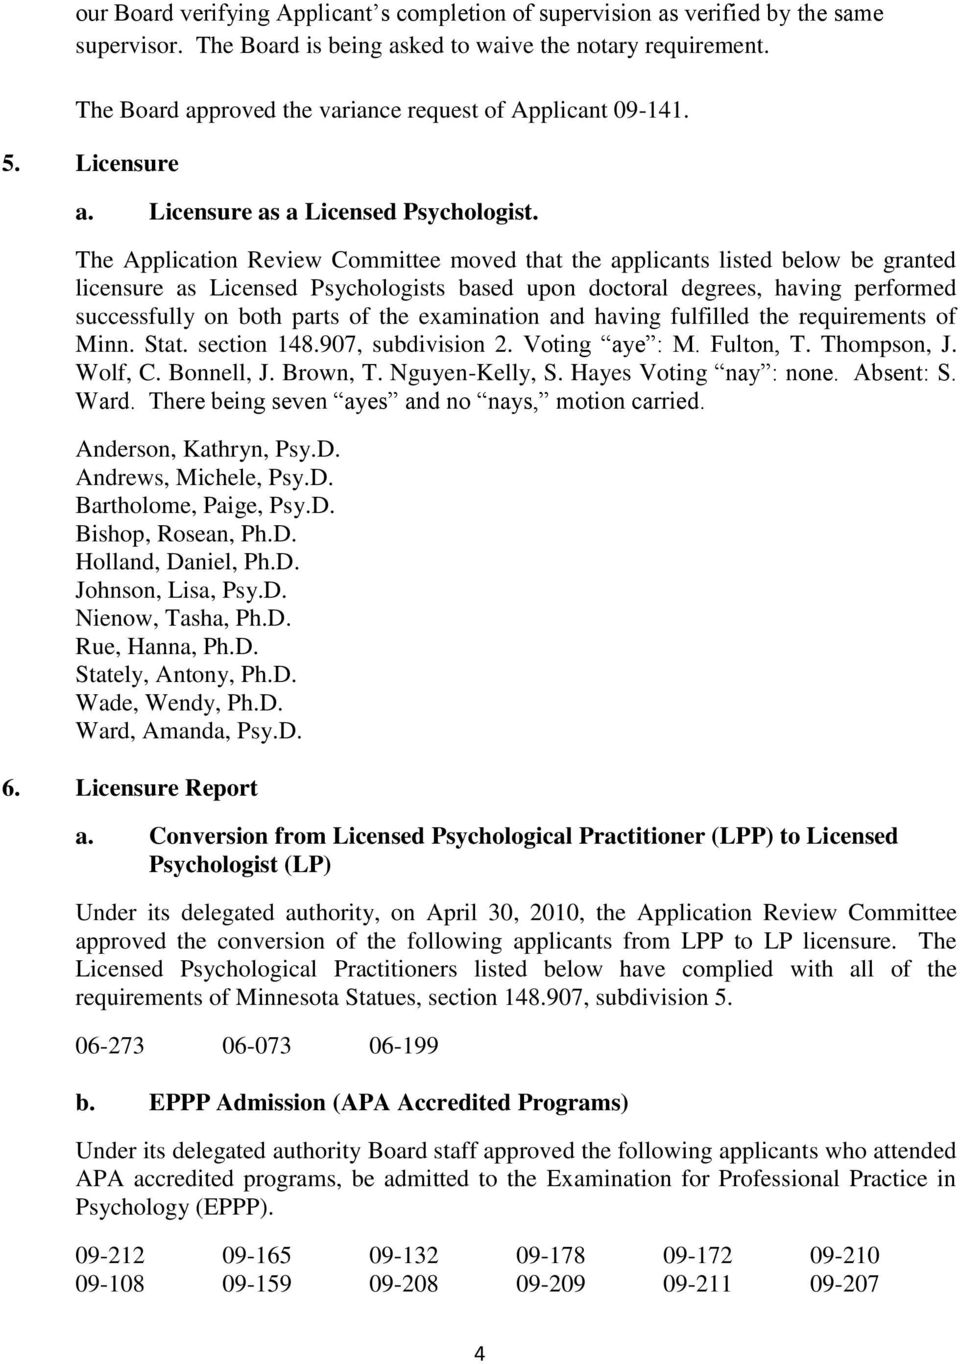 The Application Review Committee moved that the applicants listed below be granted licensure as Licensed Psychologists based upon doctoral degrees, having performed successfully on both parts of the